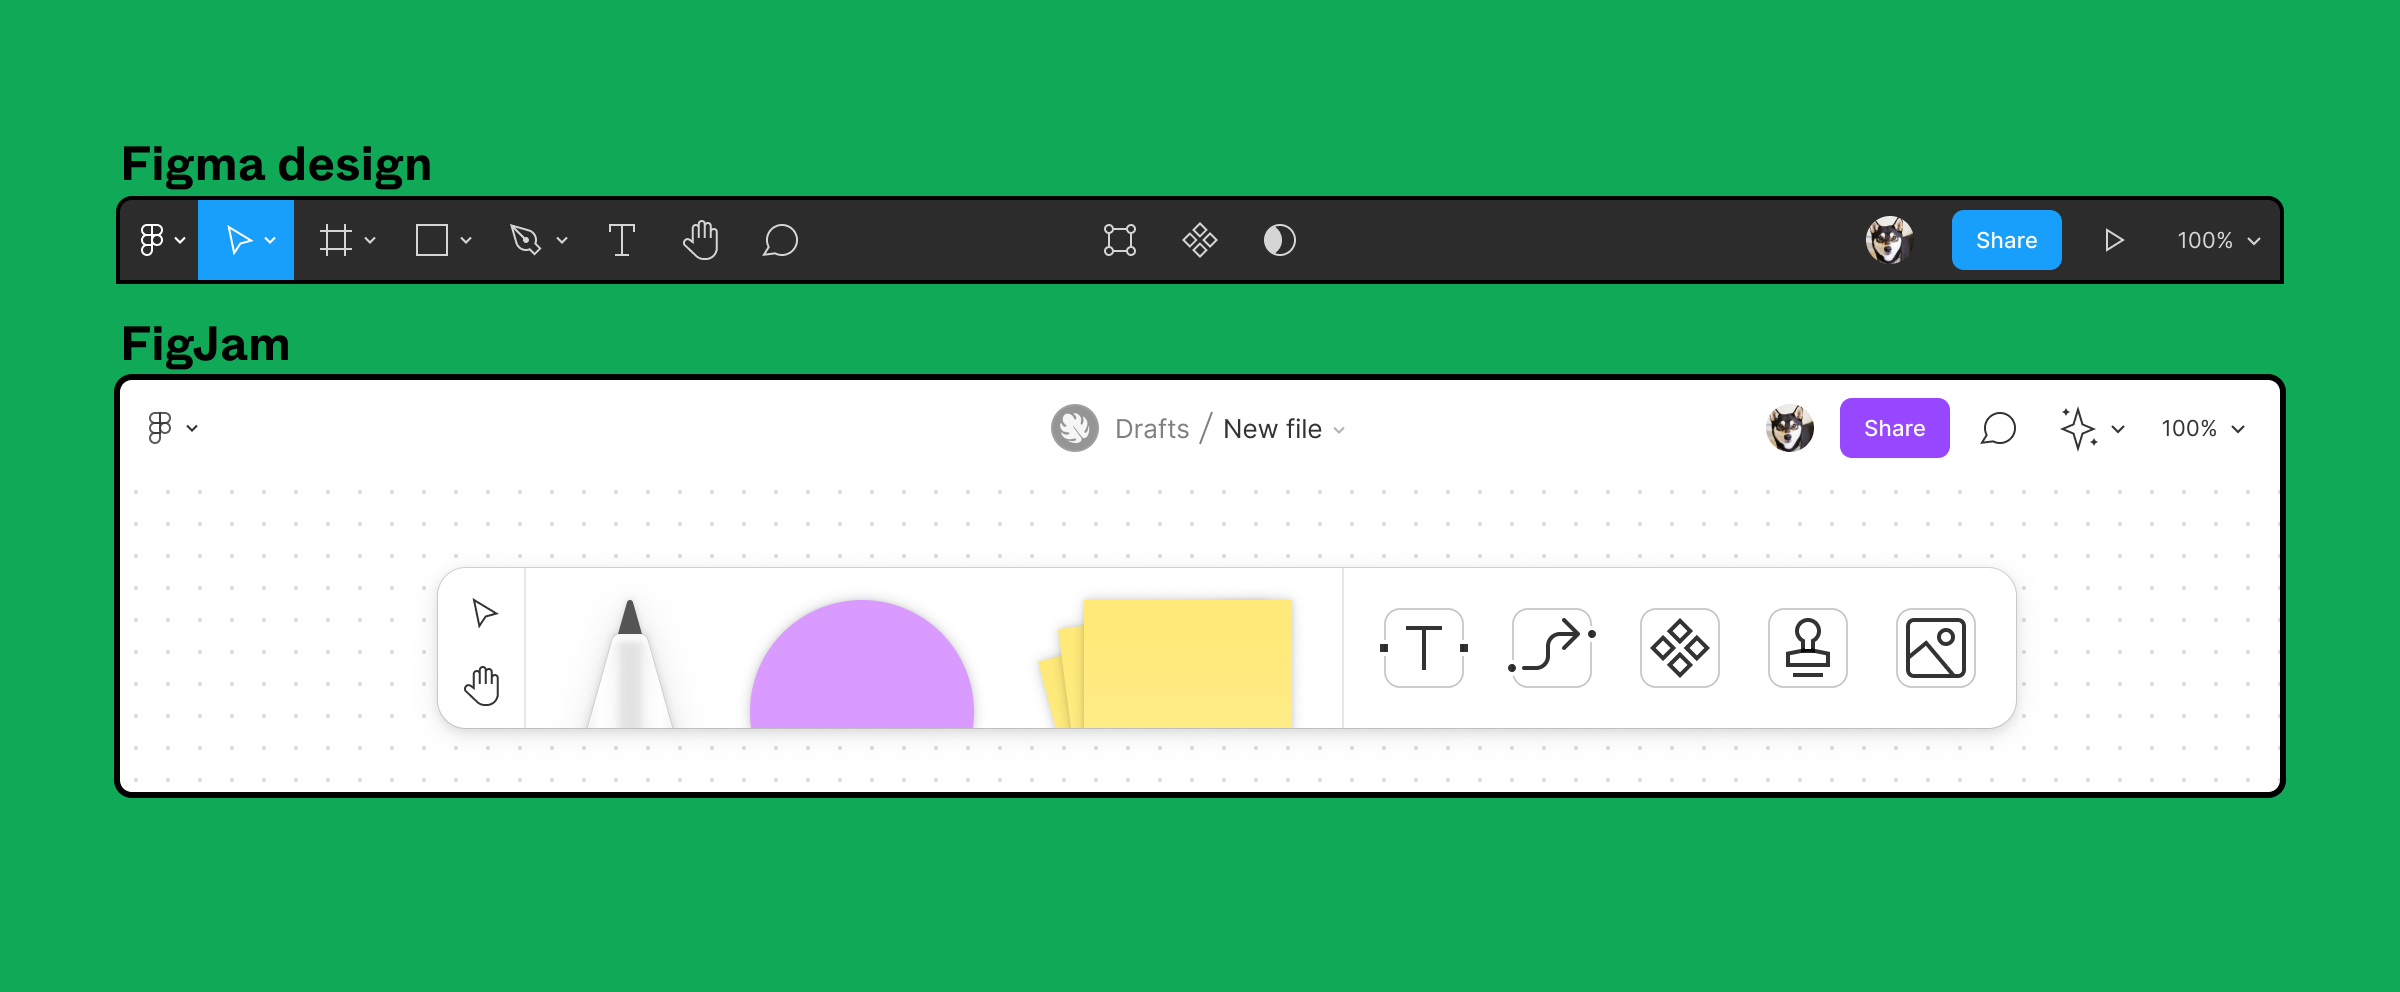 Toolbars in Figma design and FigJam which allow users to create and edit layers in the file